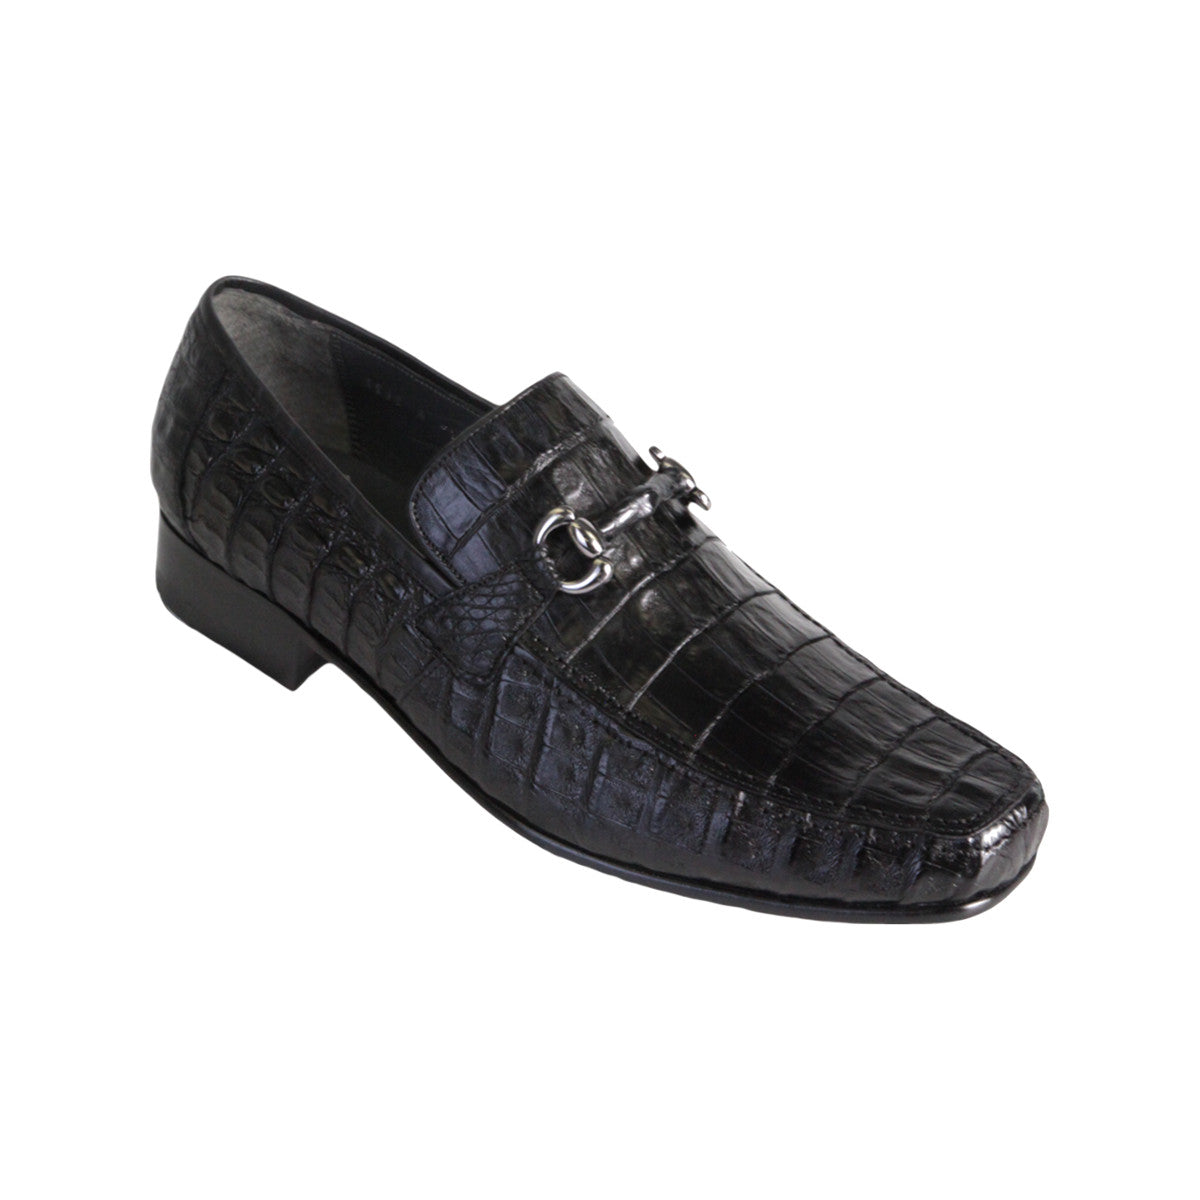 Los Altos Boots Dress Shoes Caiman Belly